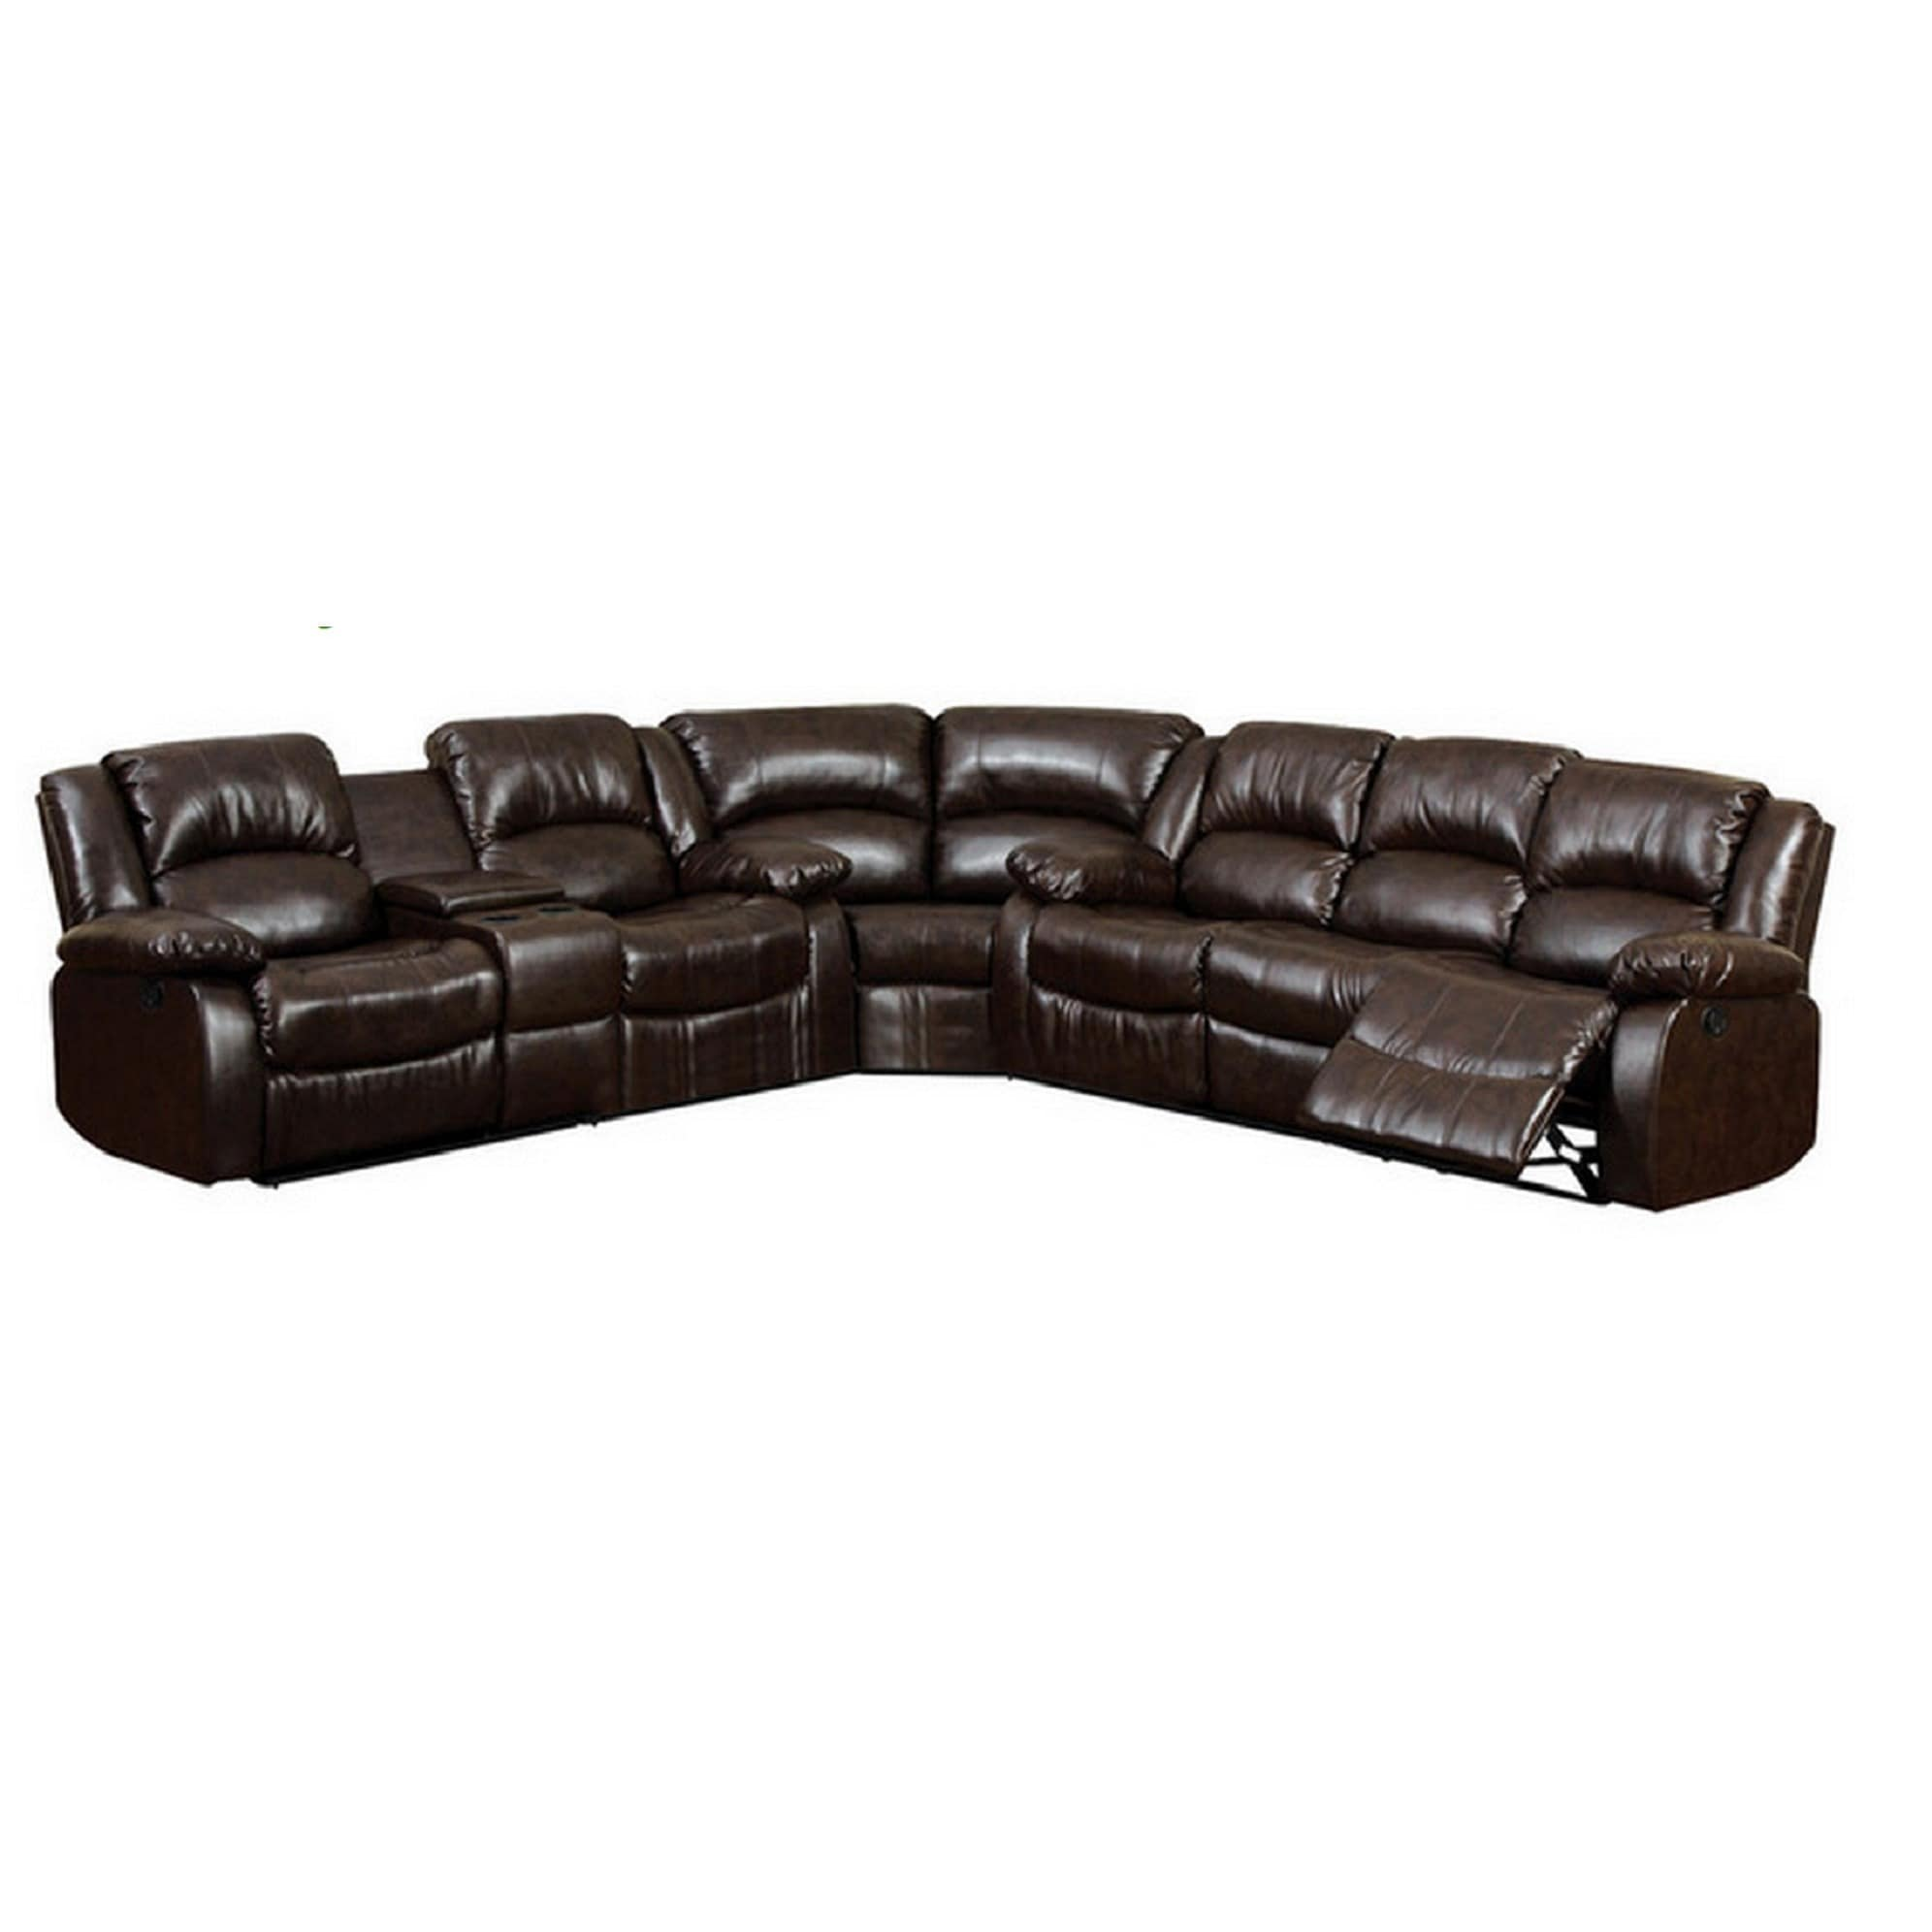 - Shop Arans Rustic Brown Bonded Leather Sectional Sofa - Overstock